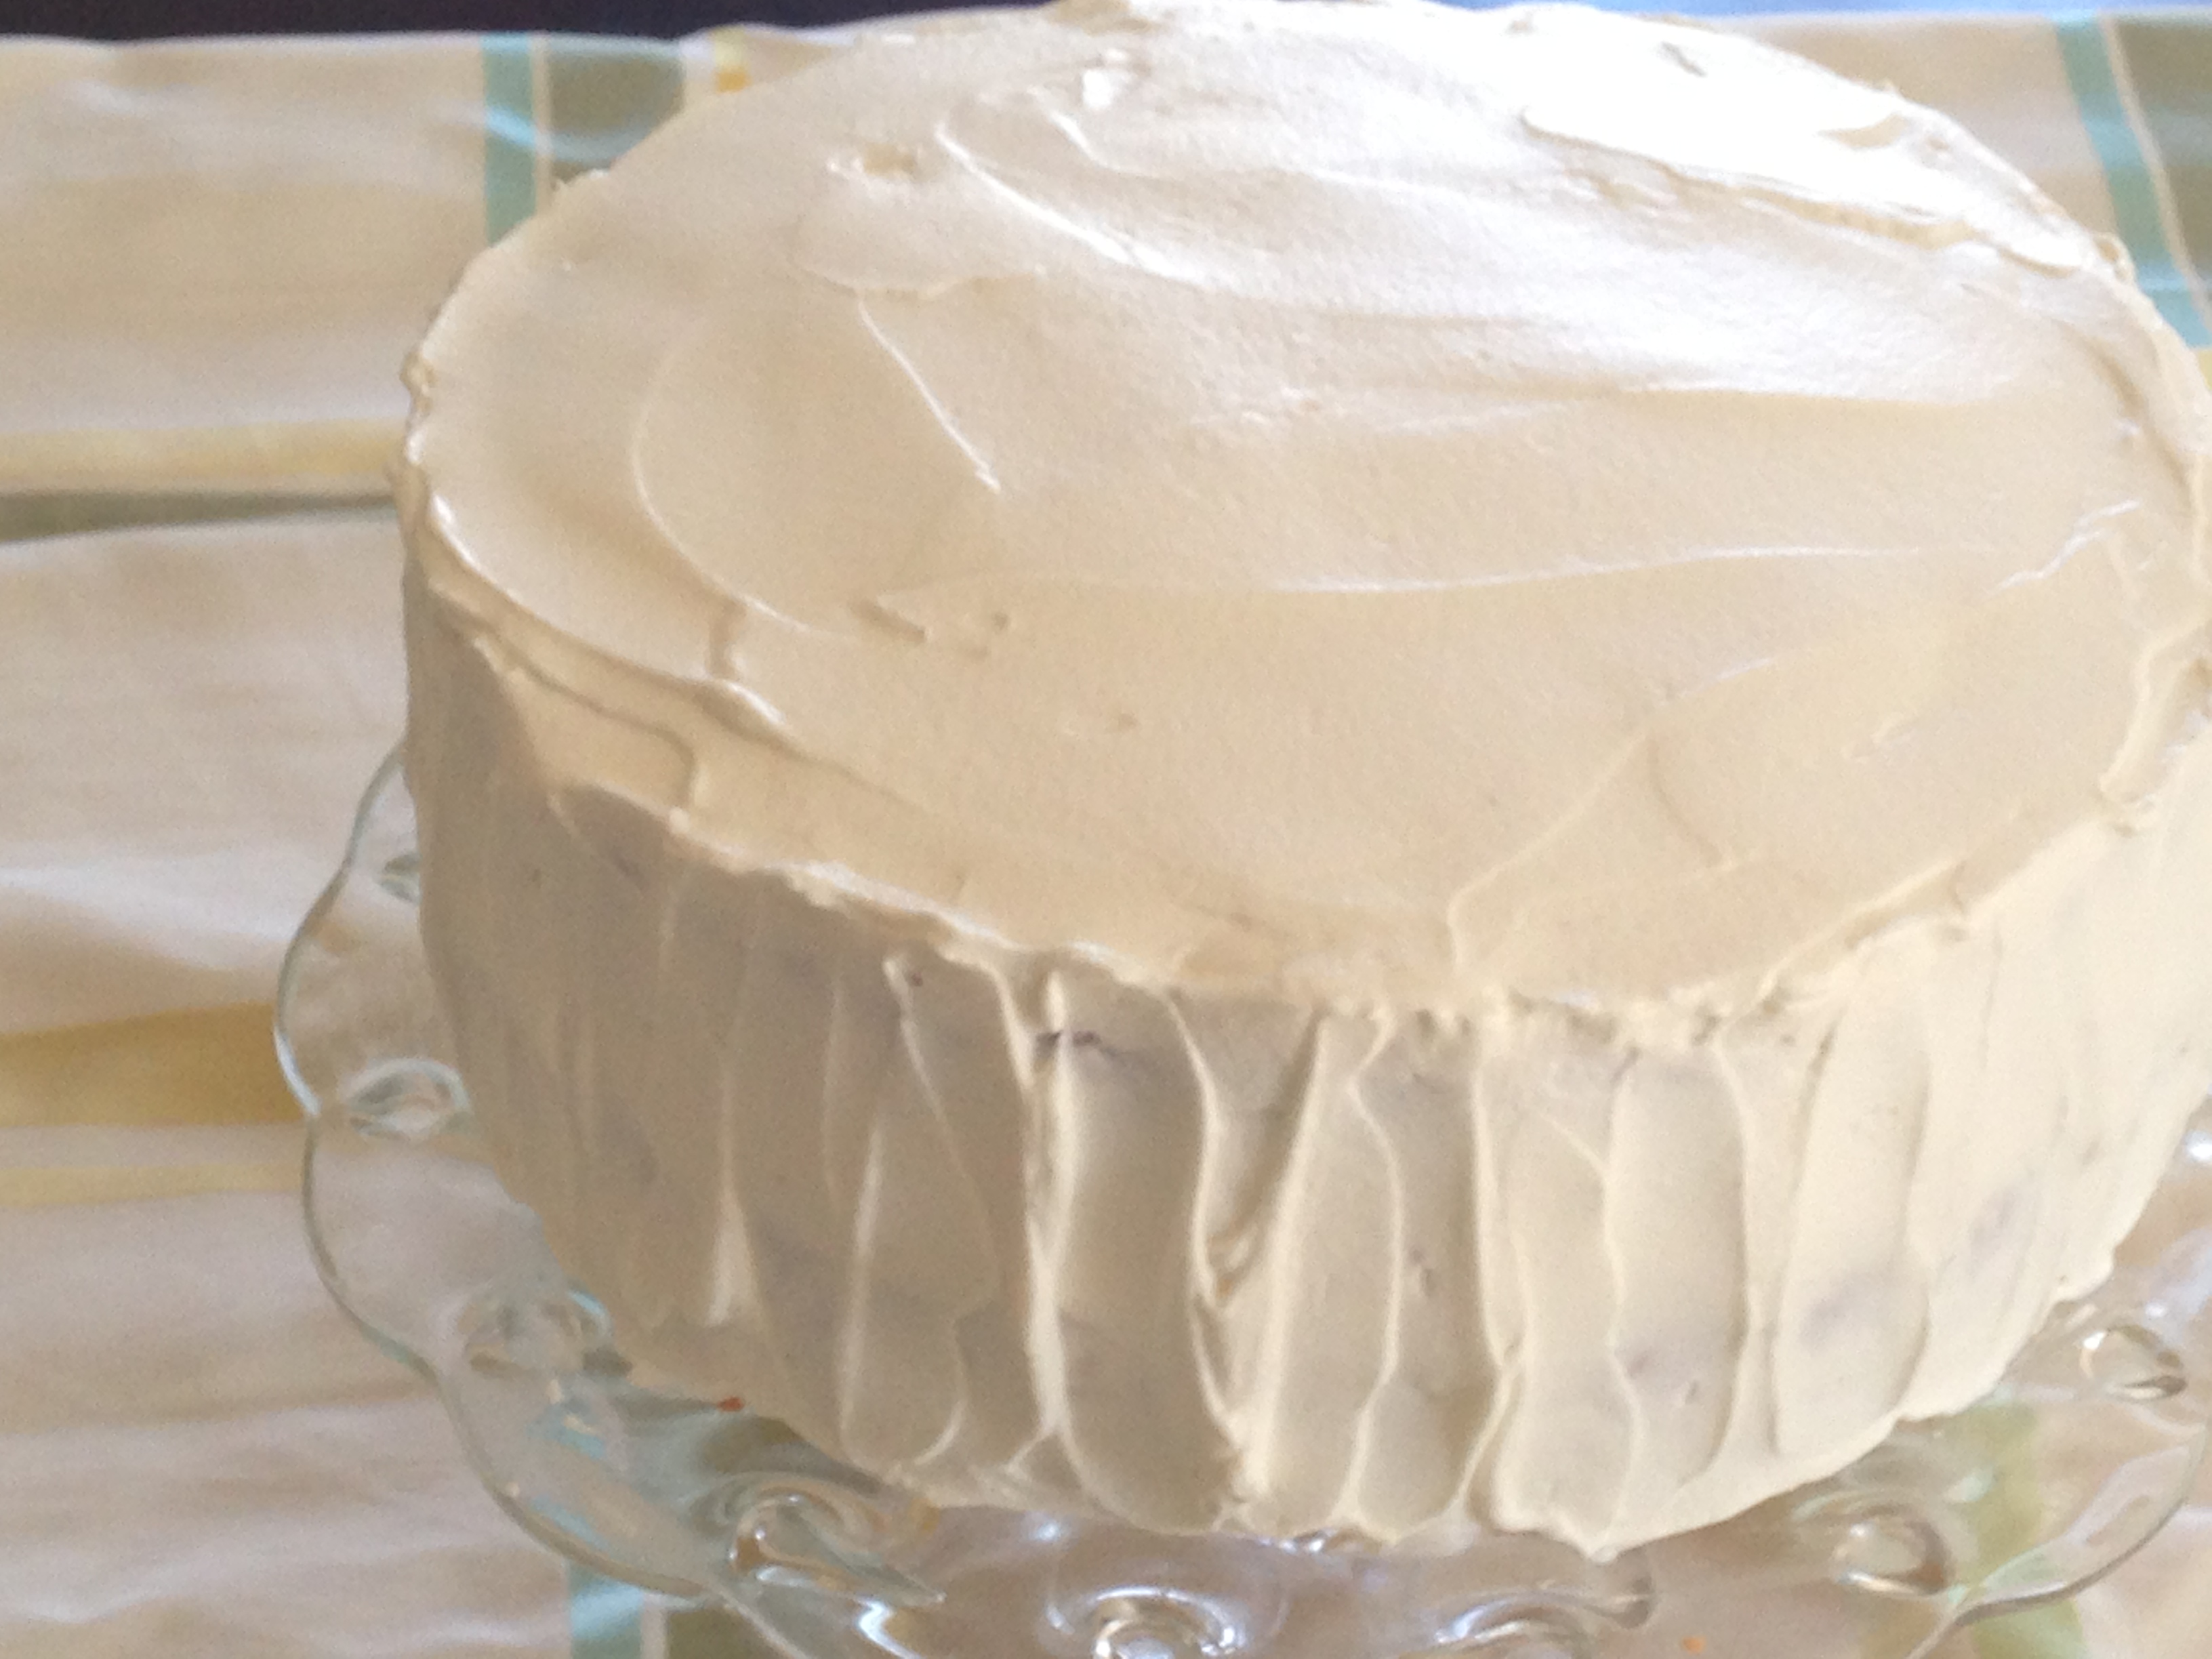 Cake With Whipped Cream Frosting Calories : whipped cream frosting apuginthekitchen